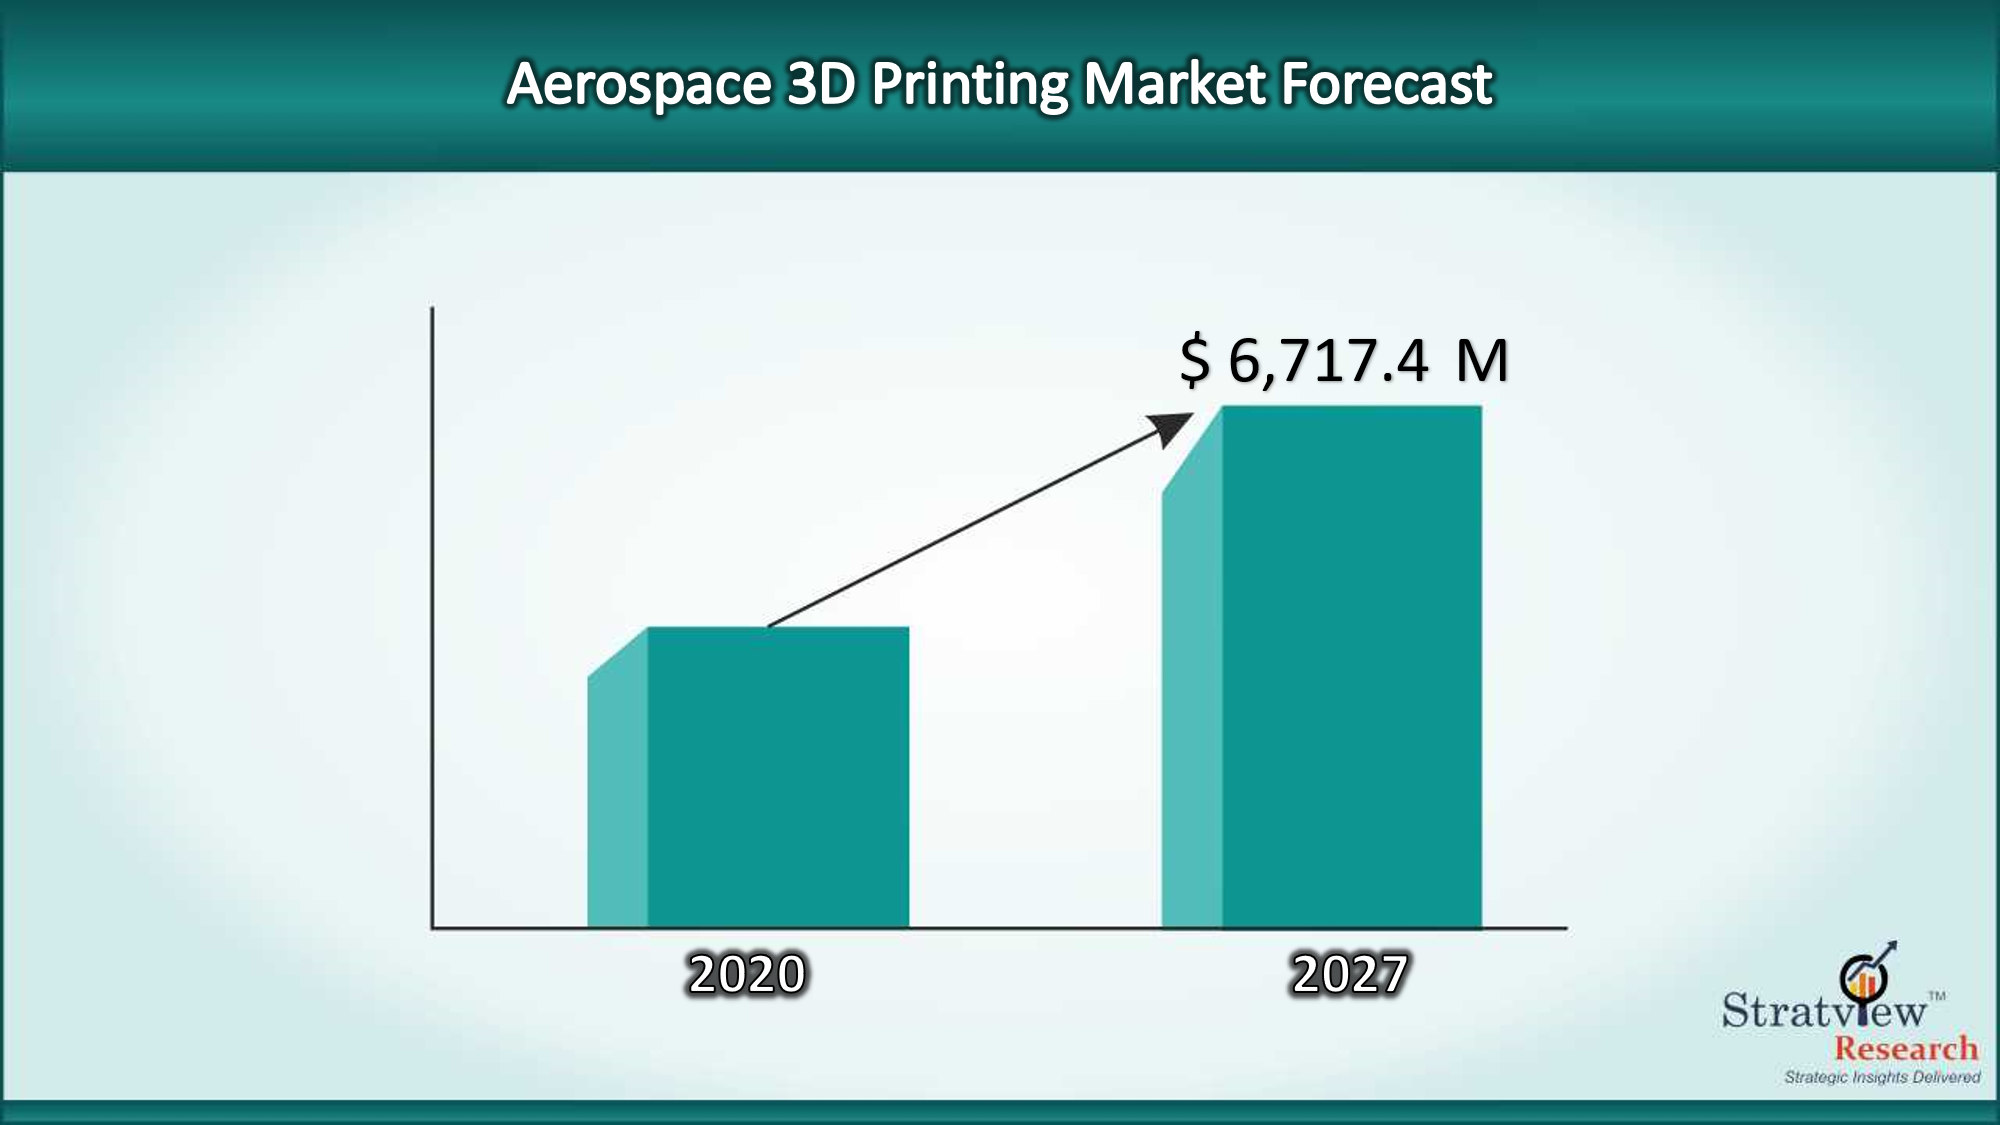 Aerospace 3D Printing Market to offer a healthy CAGR of 16.8% during 2020-27